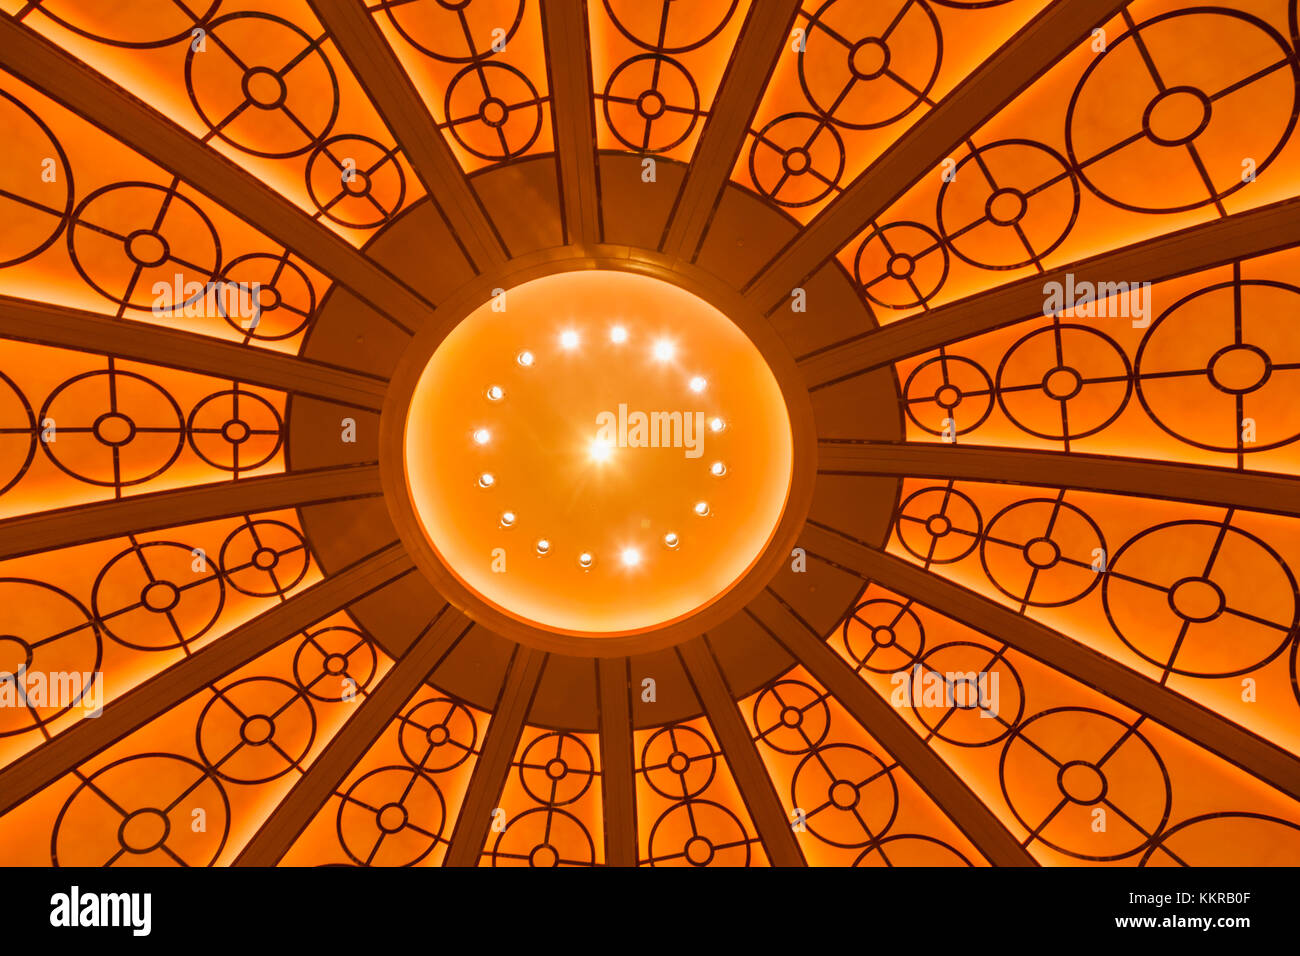 England, London, City of London, The Four Seasons Hotel, Lobby Ceiling Stock Photo